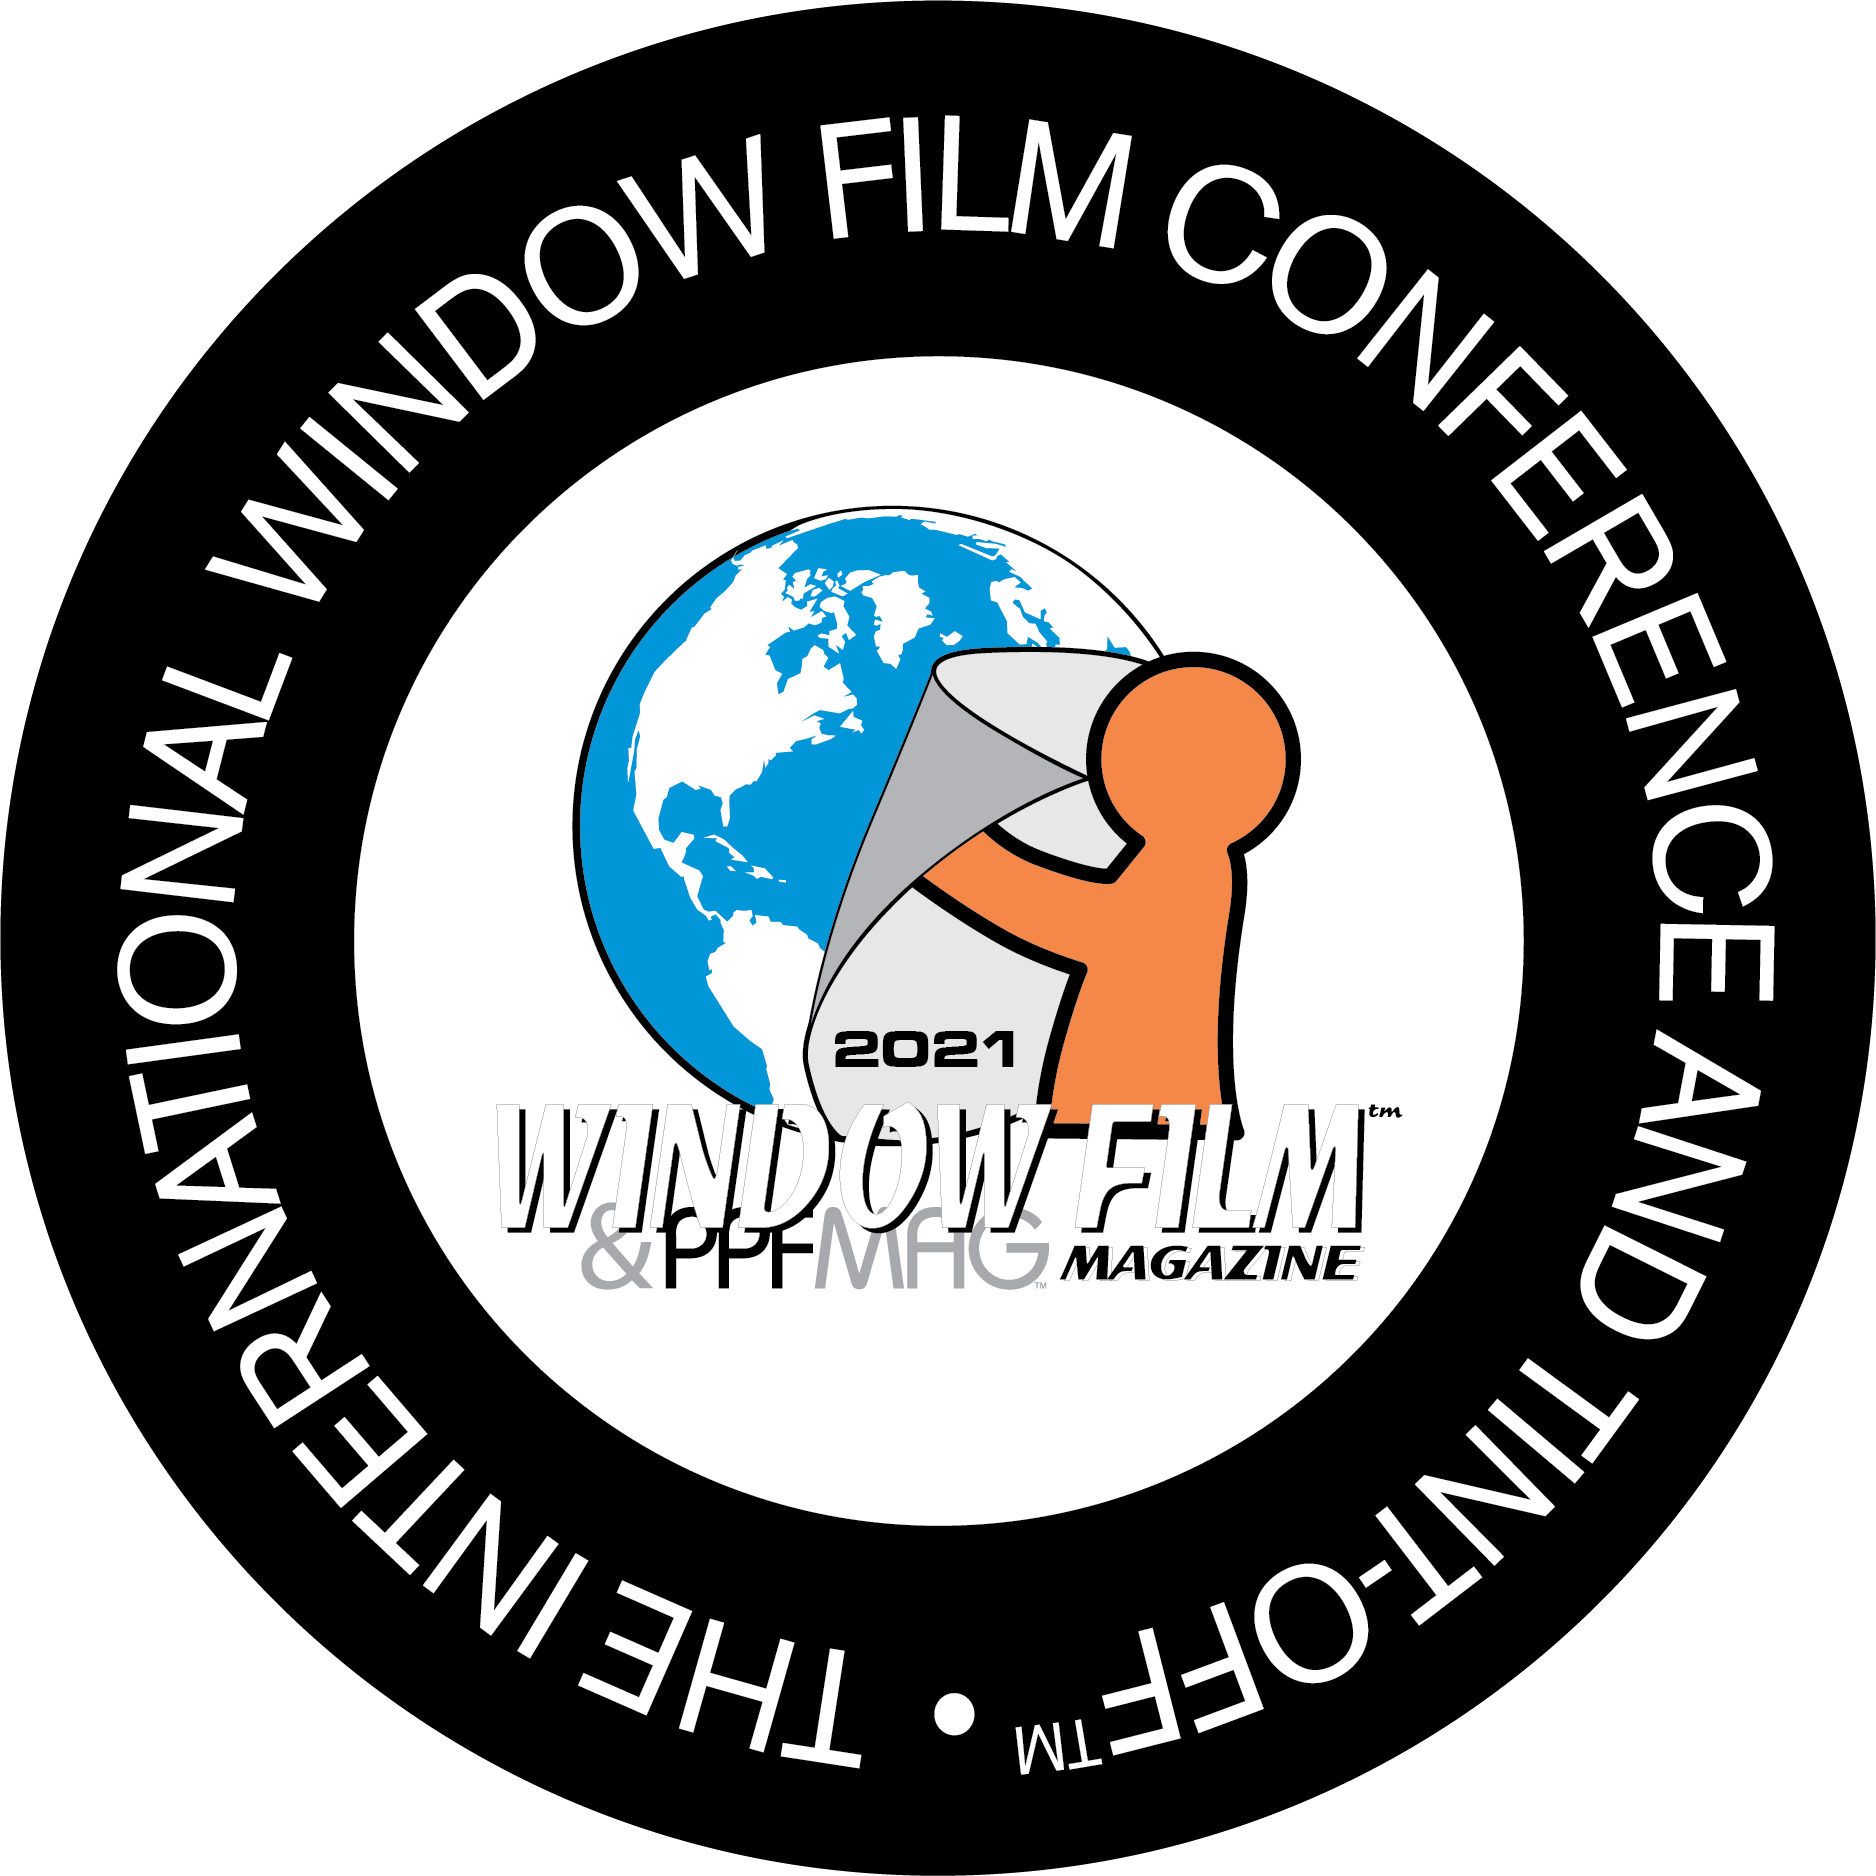 2021 International Window Film Conference And Tint Off™ With Orlando Convention Center 2021 Calendar